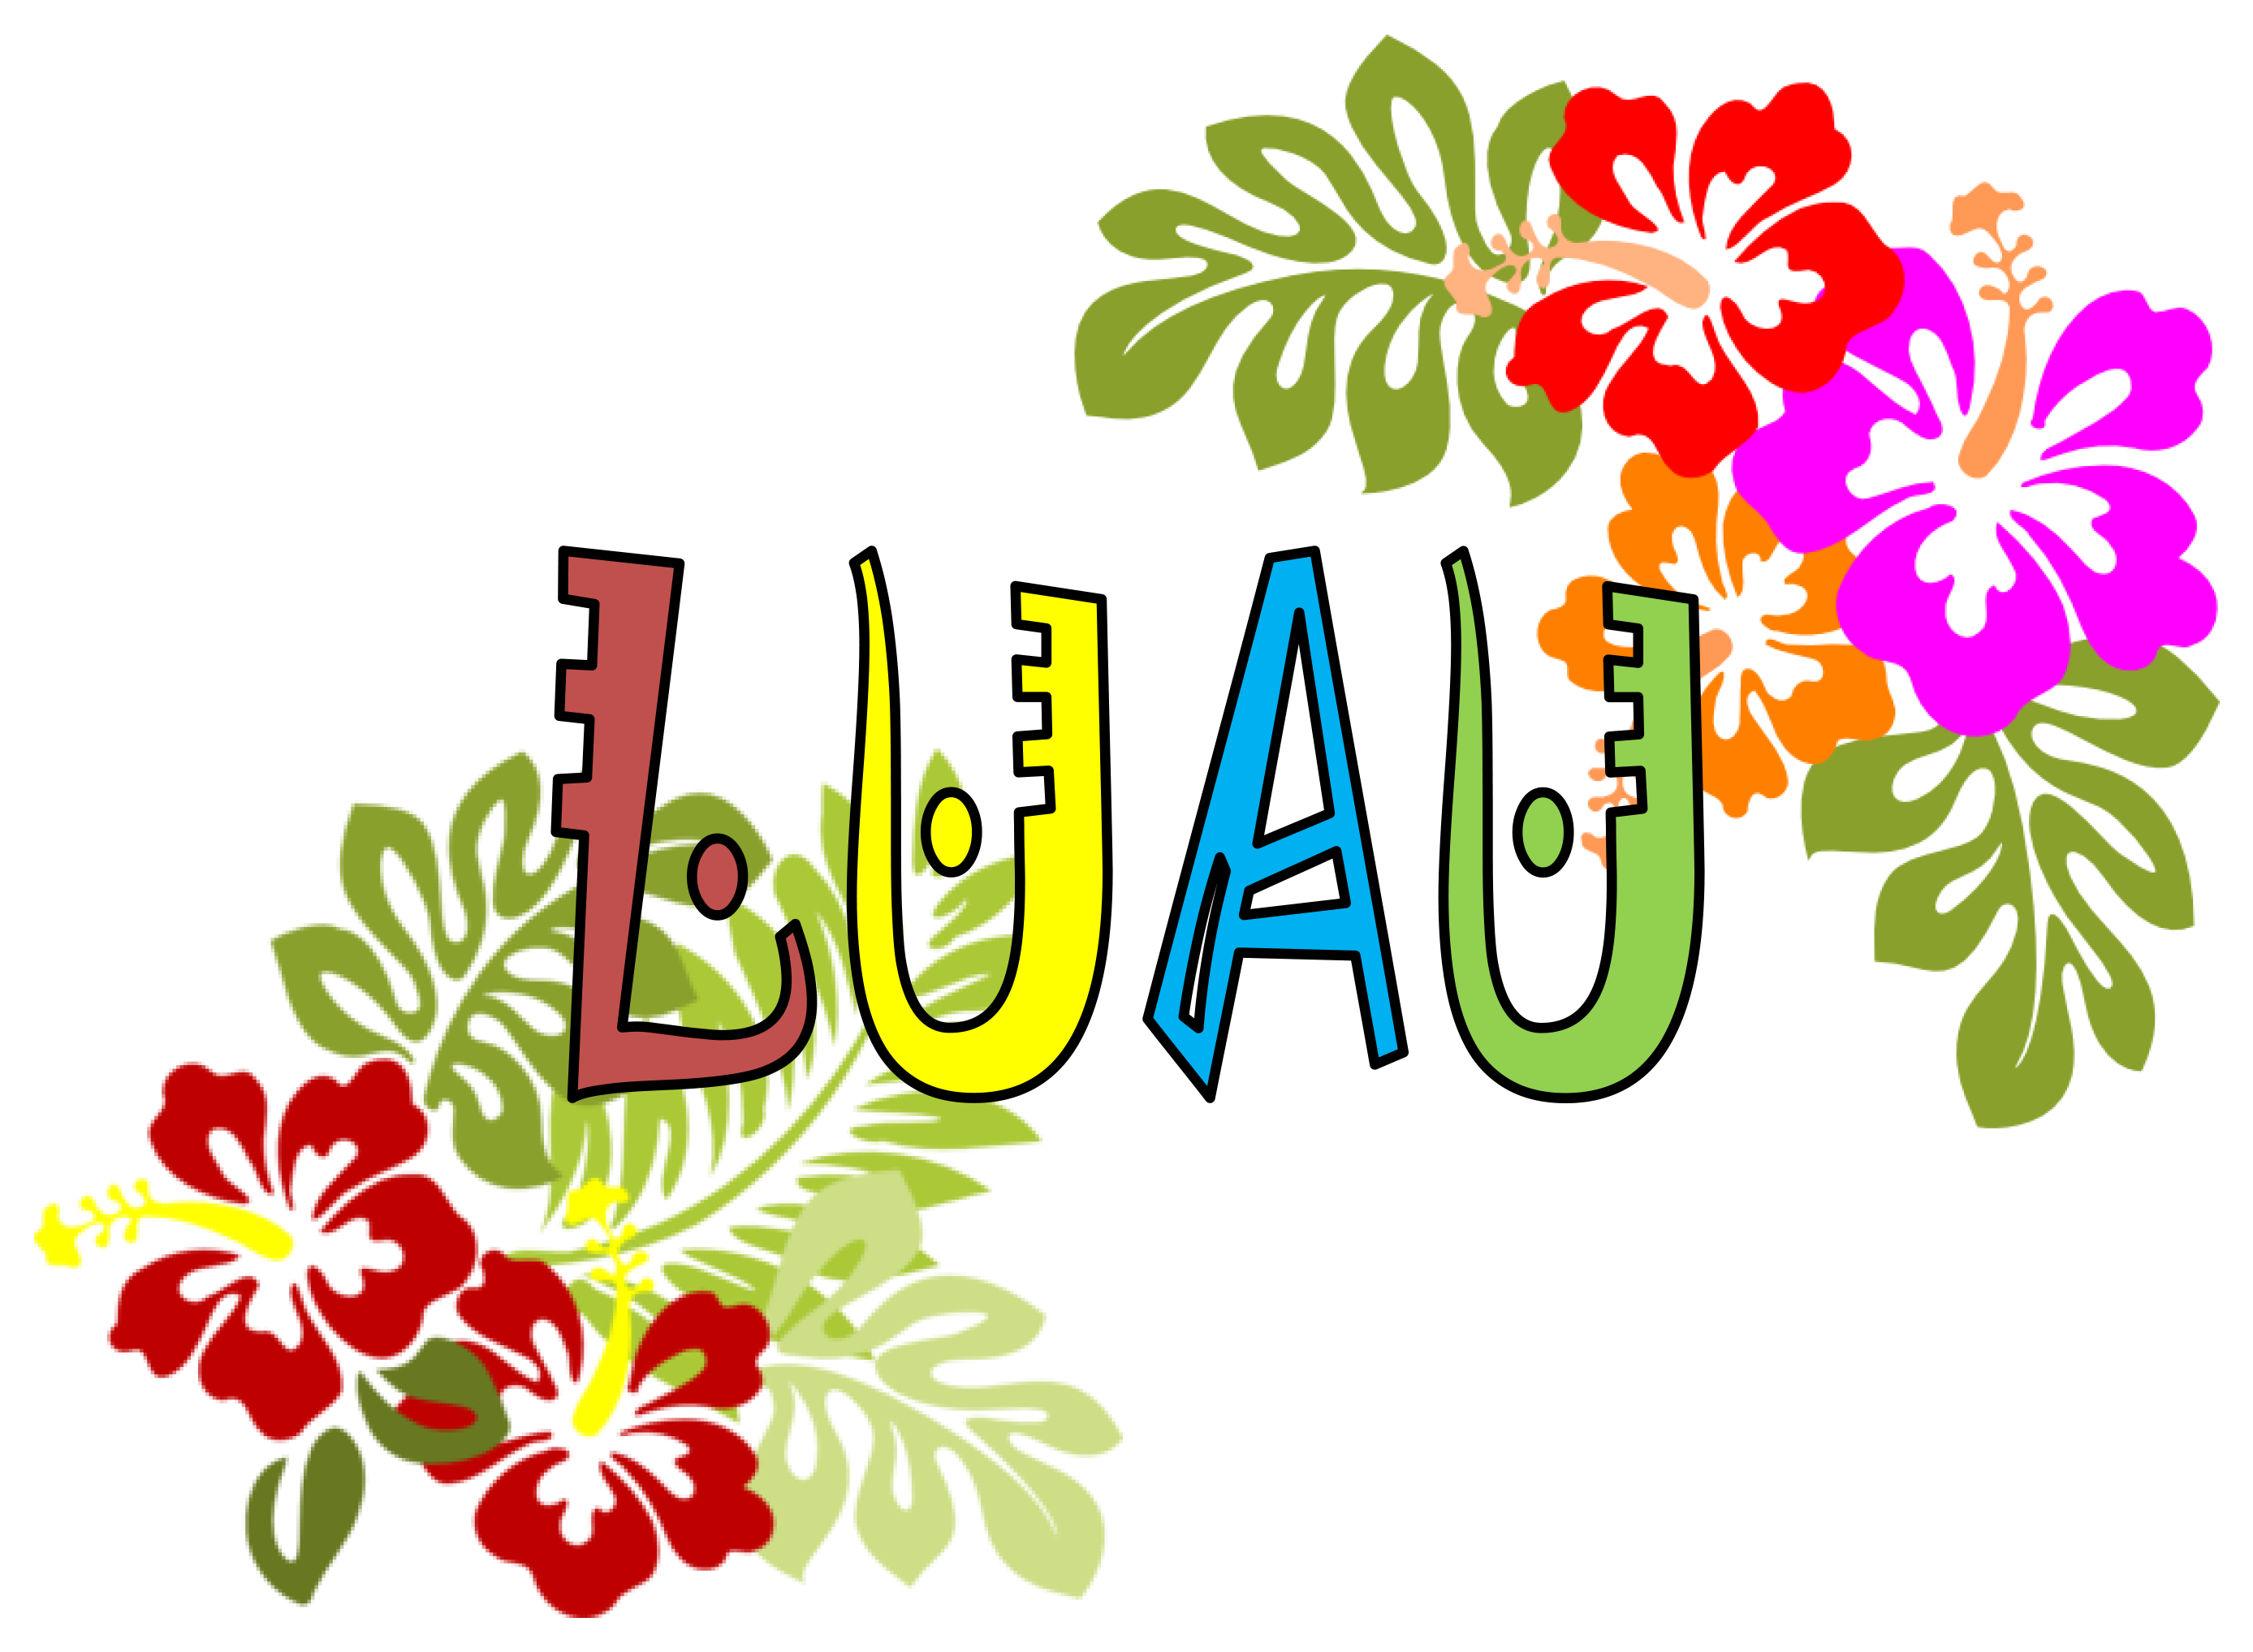 Luau Dinner Dance Sponsored By The Filipino Association - Luau Images PNG